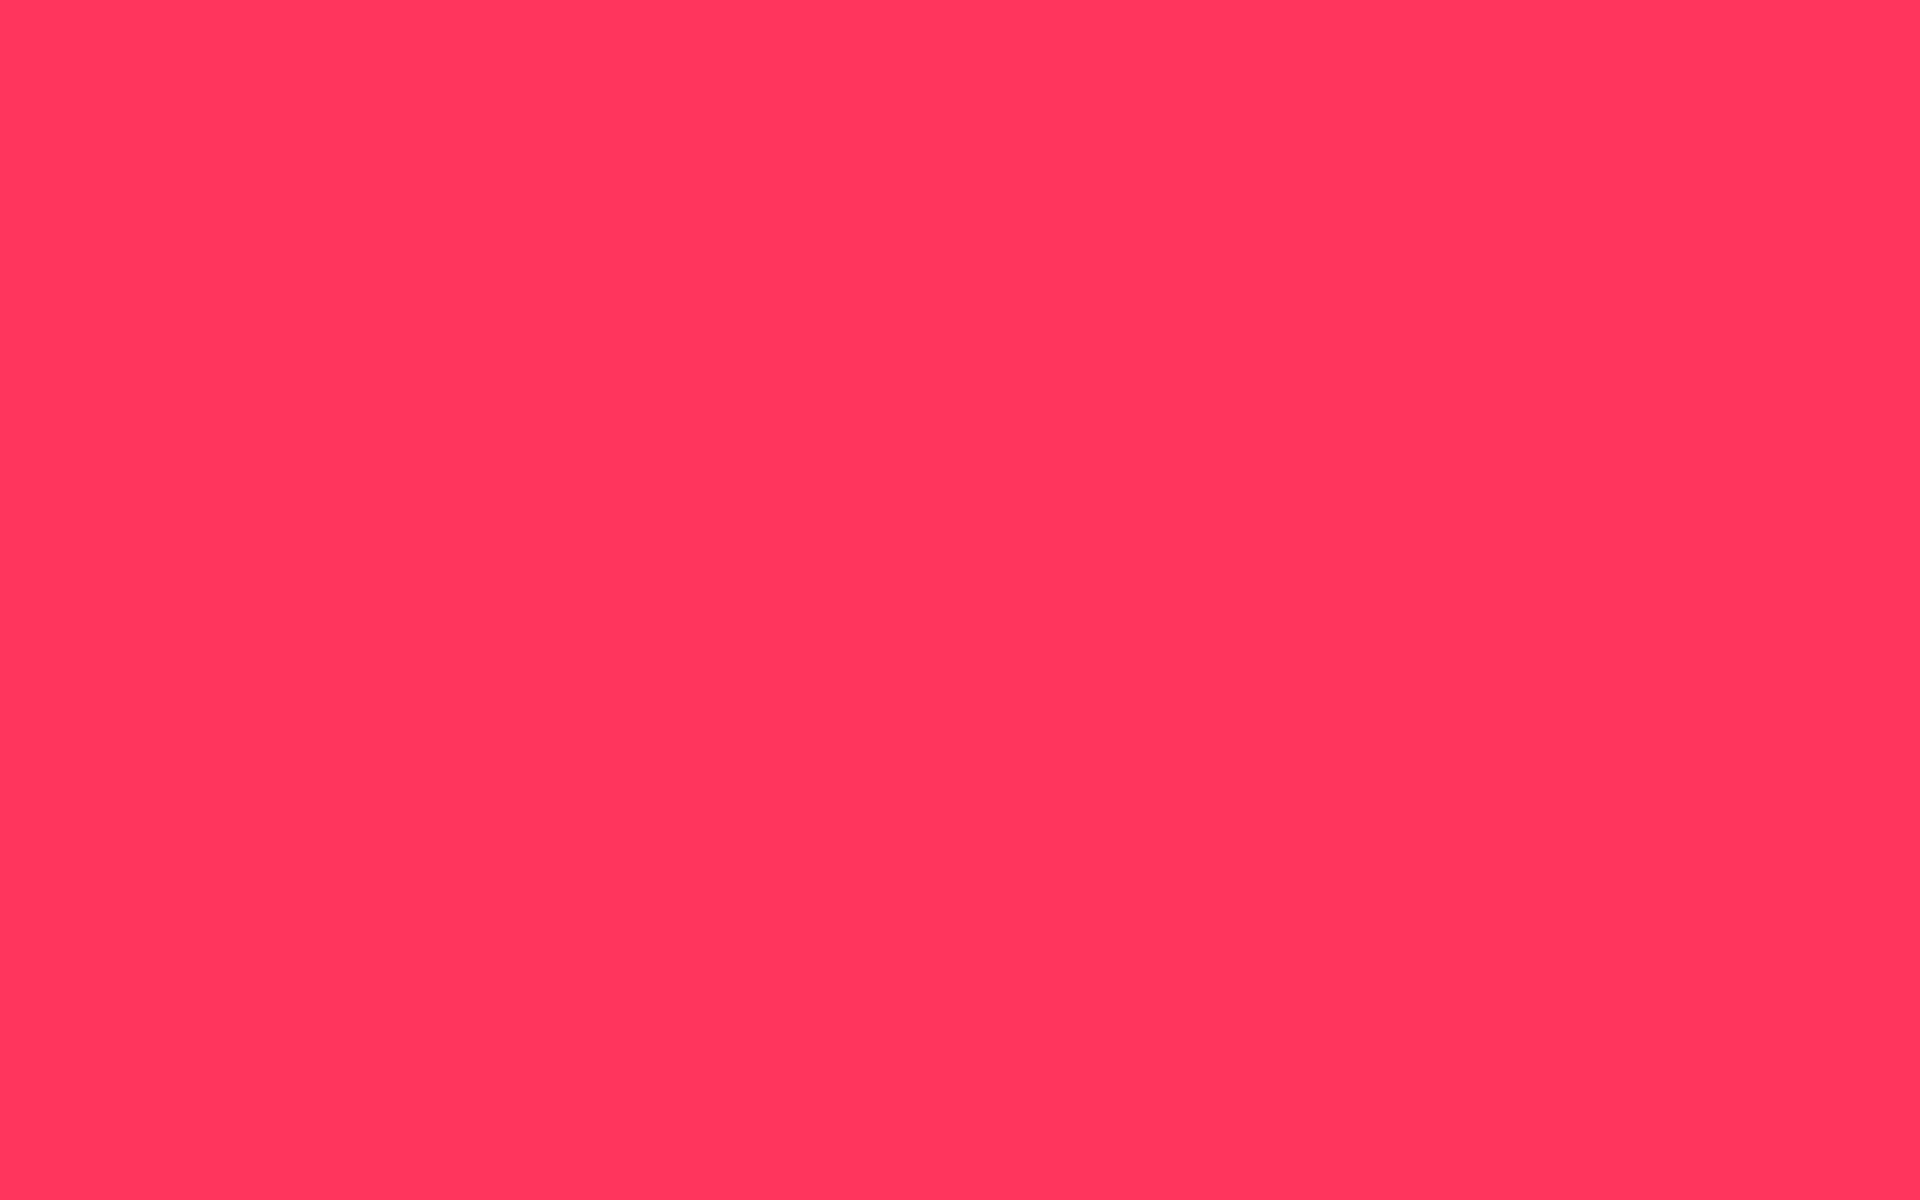 1920x1200 Radical Red Solid Color Background